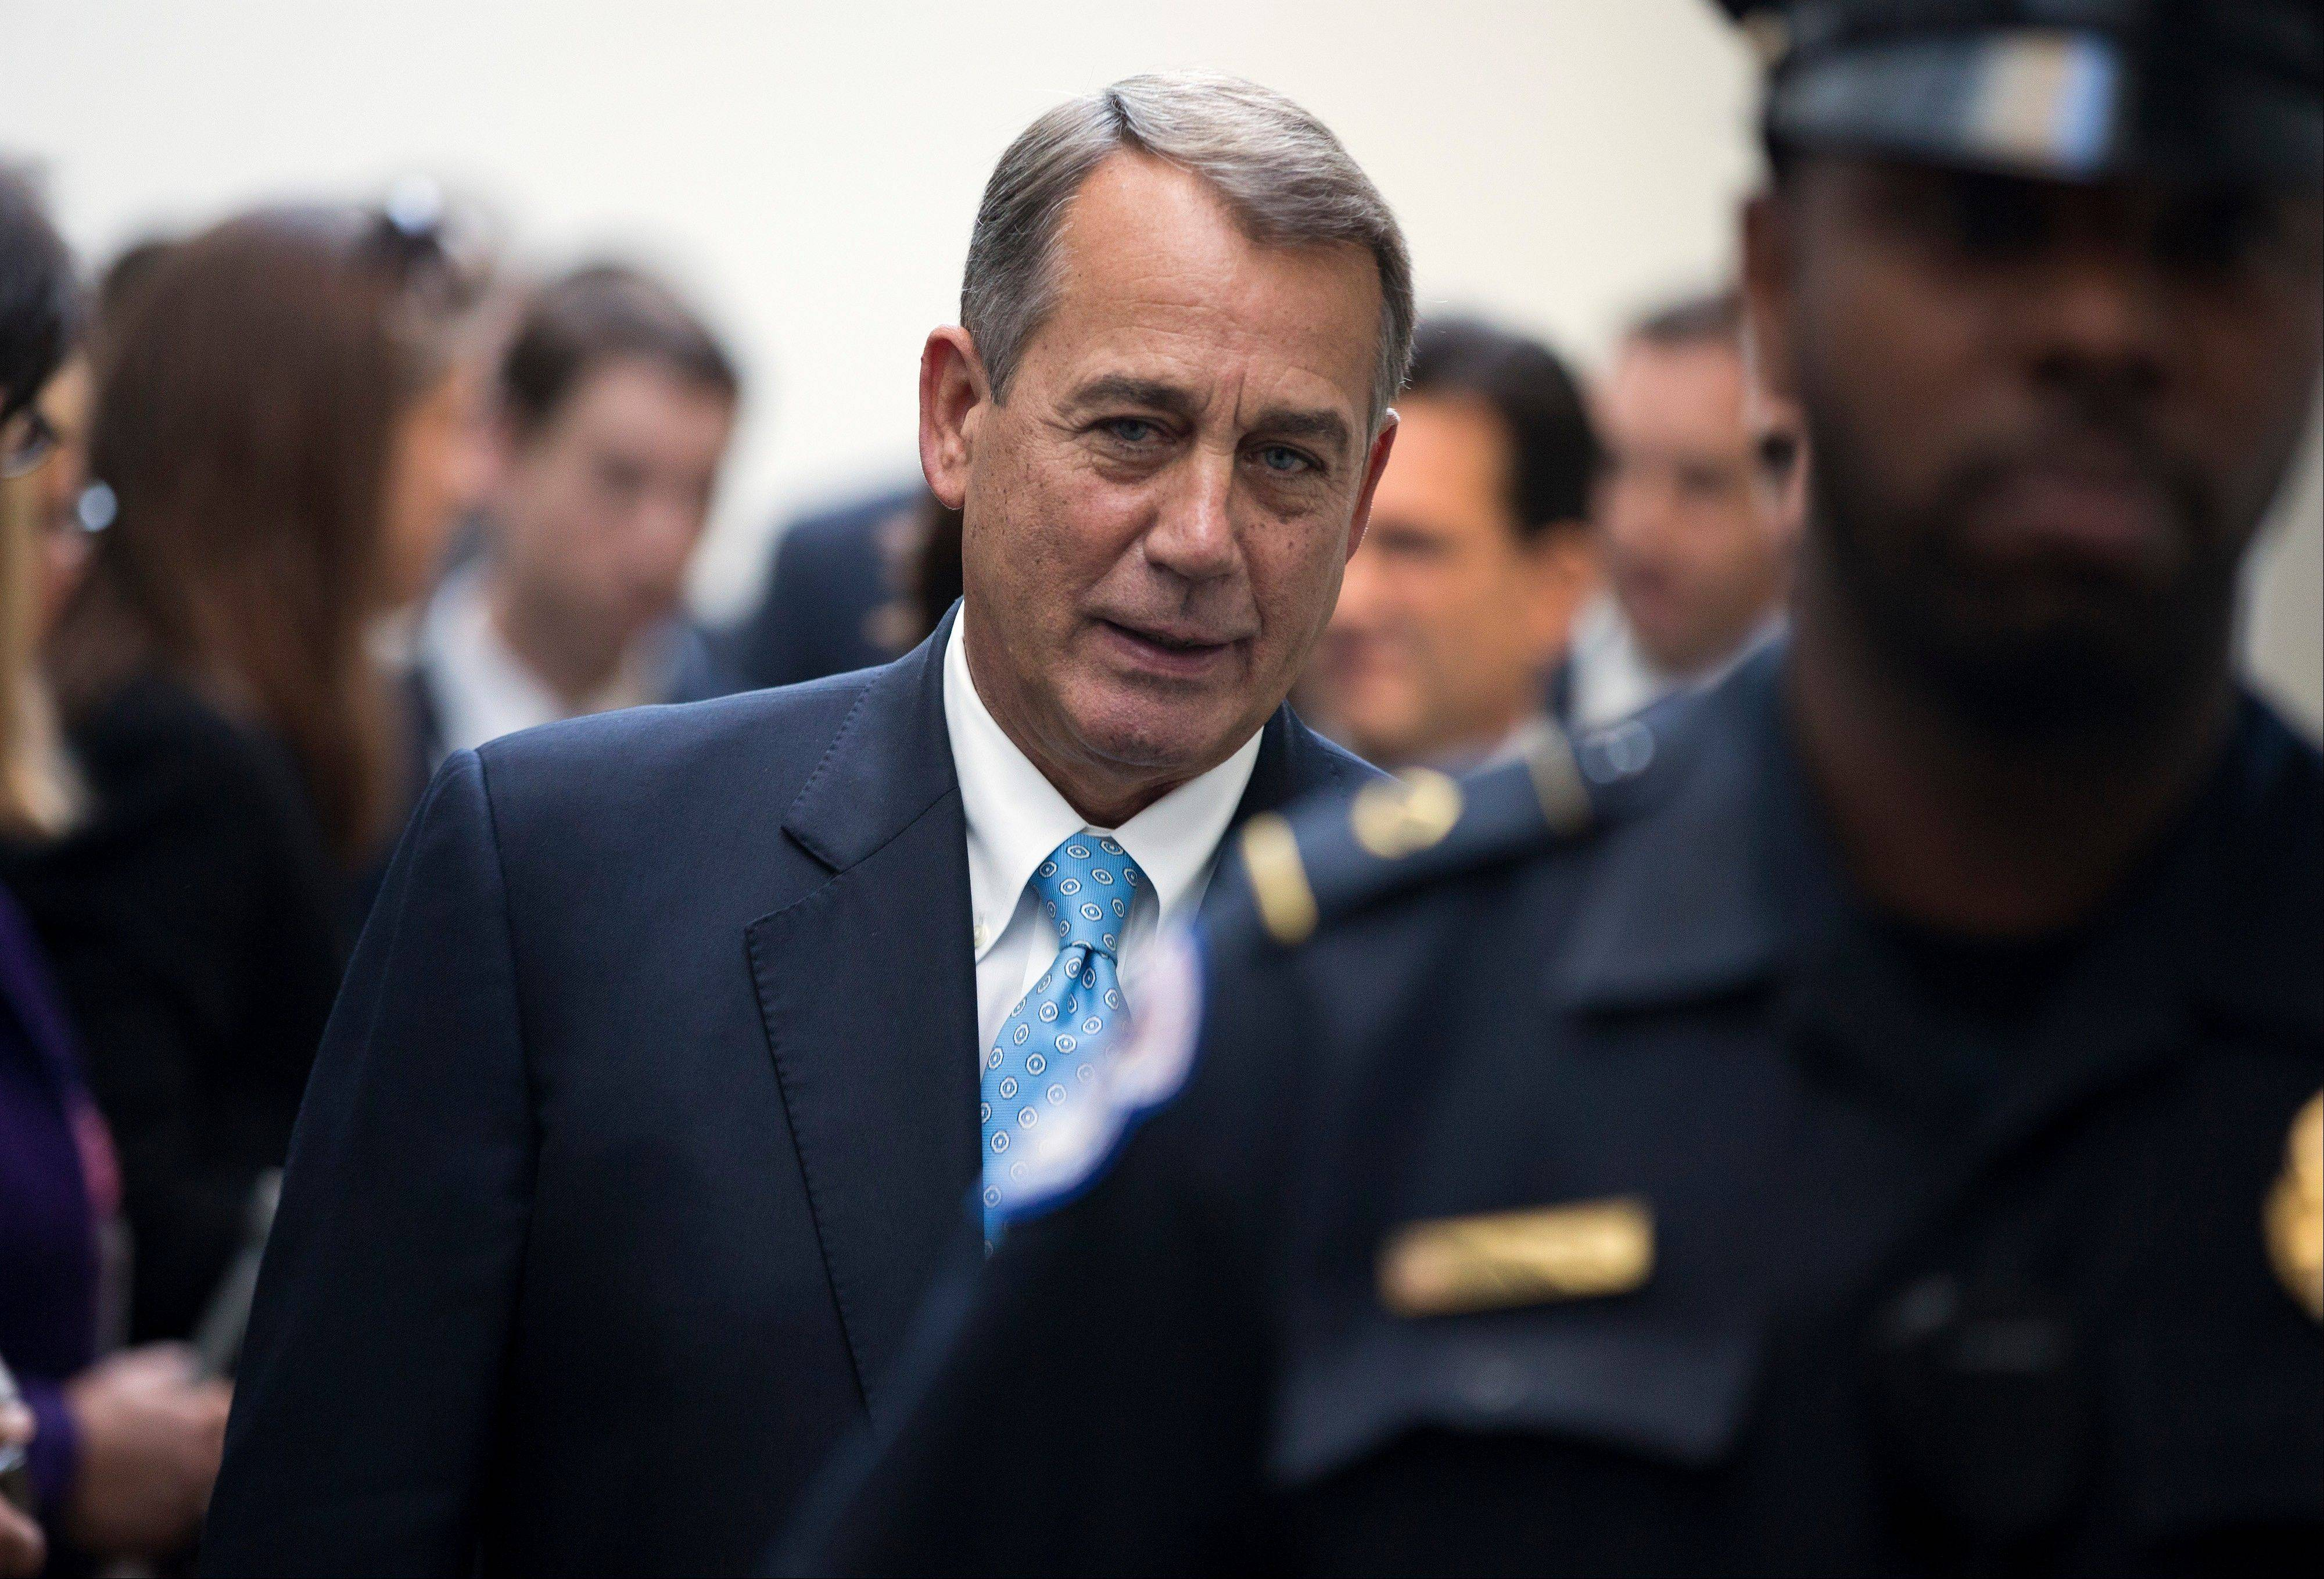 Speaker of the House Rep. John Boehner and other House GOP leaders Tuesday floated a plan to fellow Repu